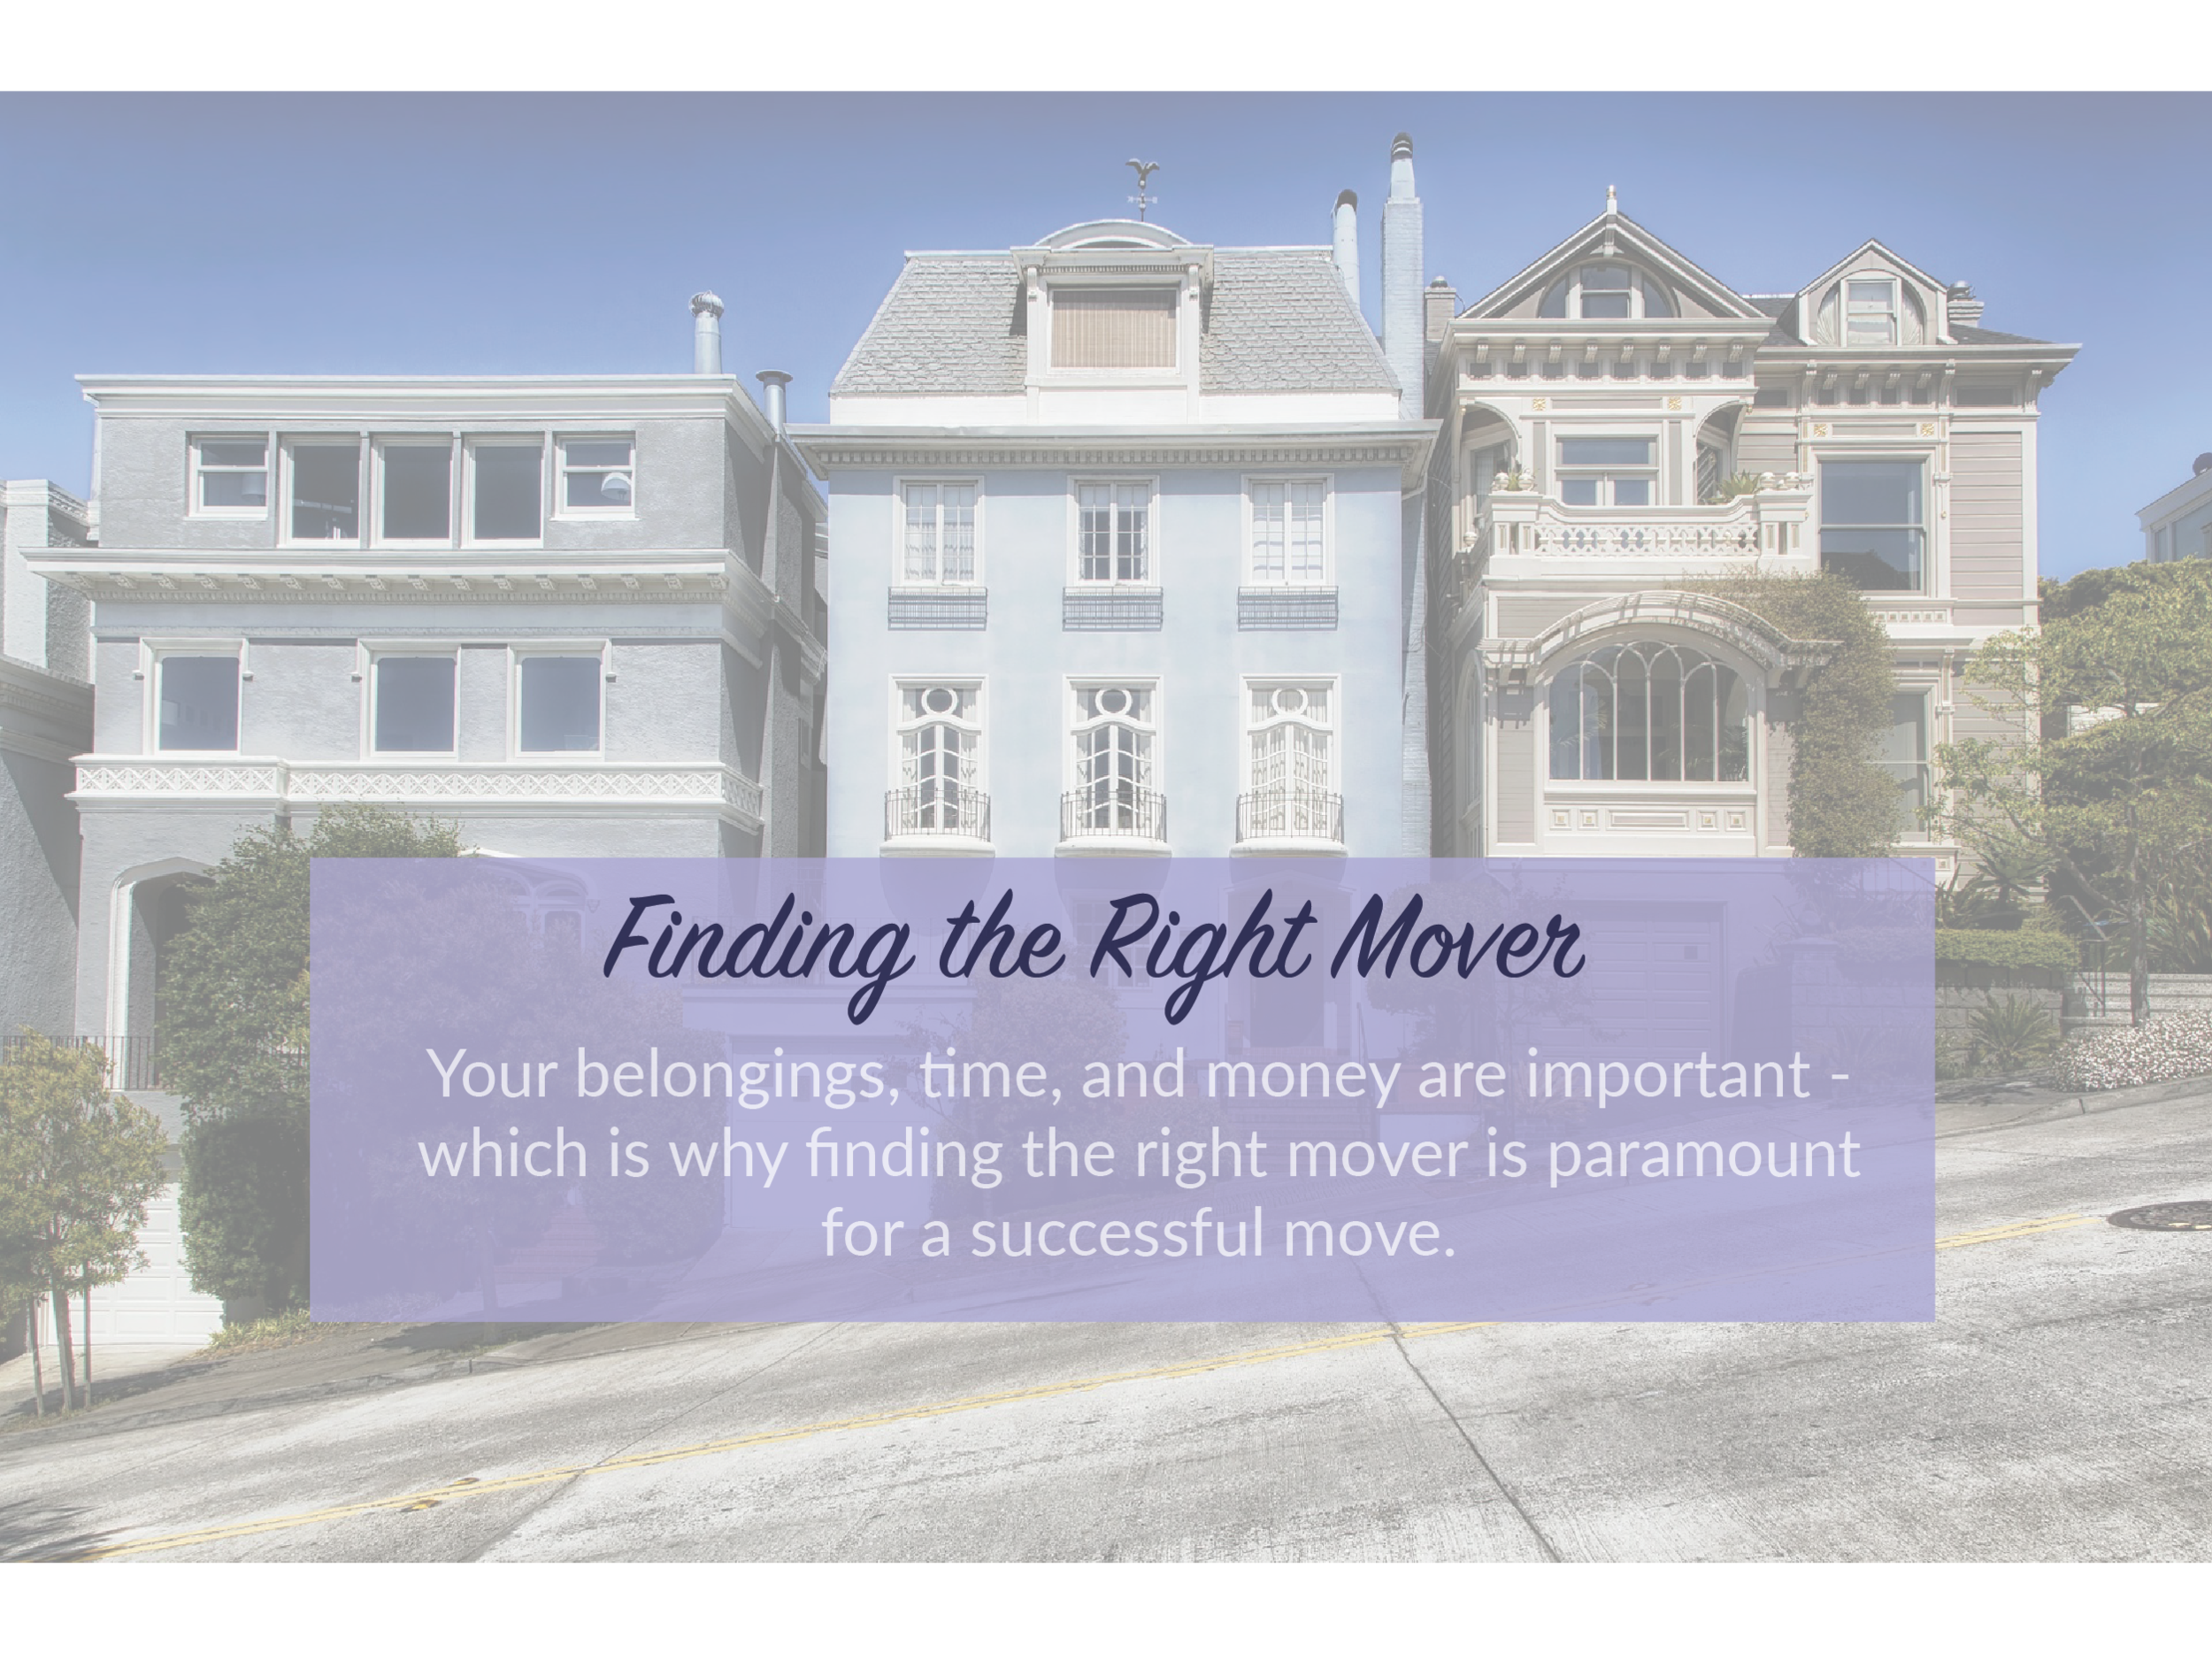 Before you move to a new home, you need to find the right mover to help with your move. Virgil Moves can help you find a qualified mover in your area.